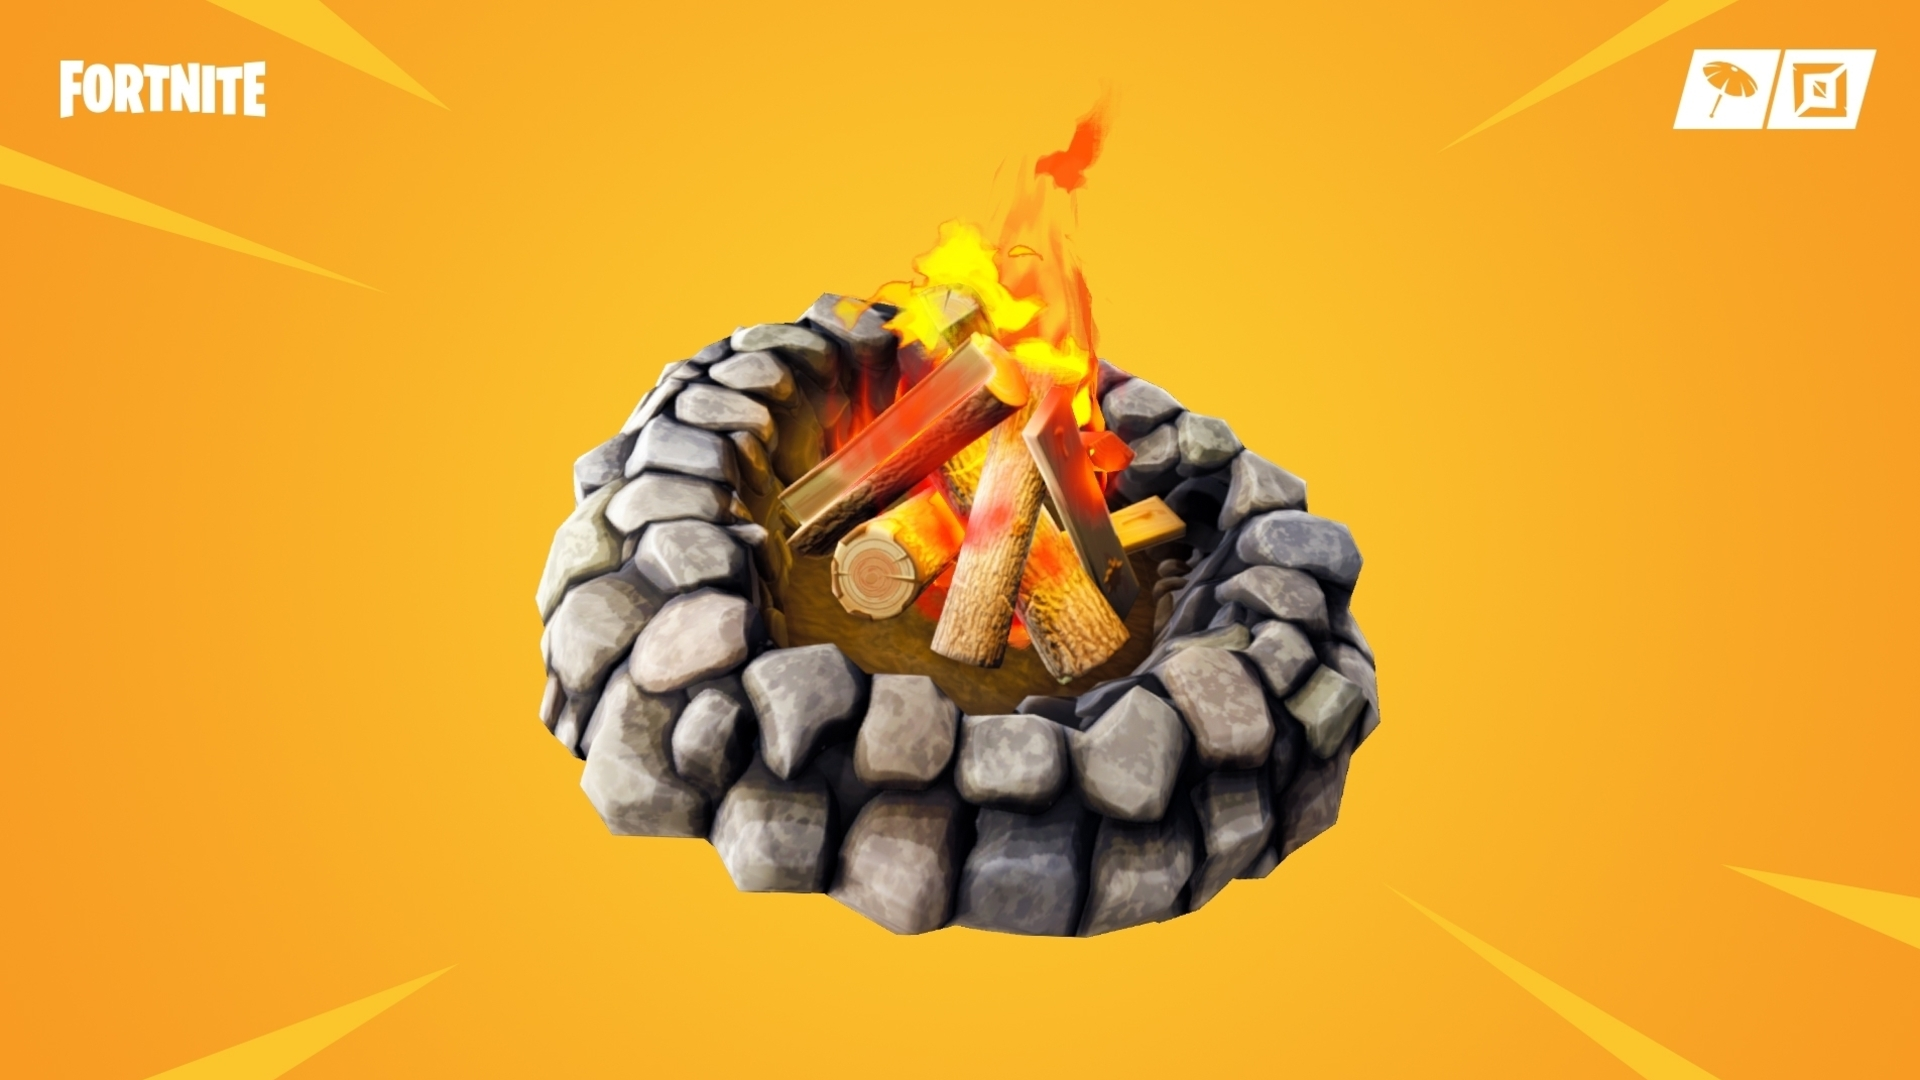 Fortnite adds chaotic bottle rockets and environmental campfires